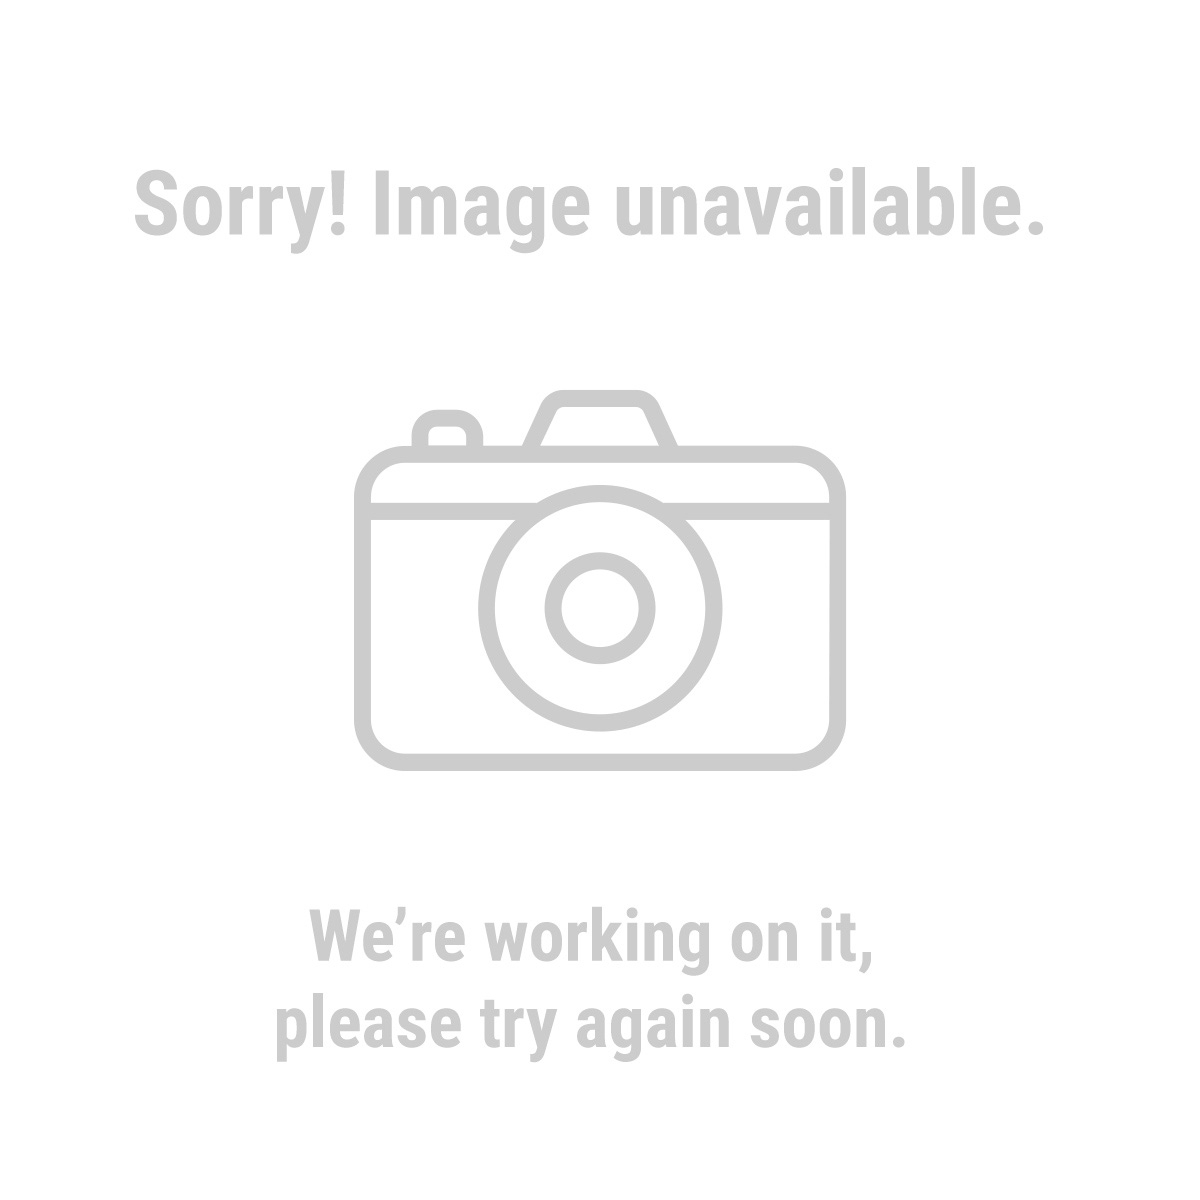 Predator Generators 63090 4000 Peak/3200 Running Watts, 6.5 HP  (212cc) Generator CARB